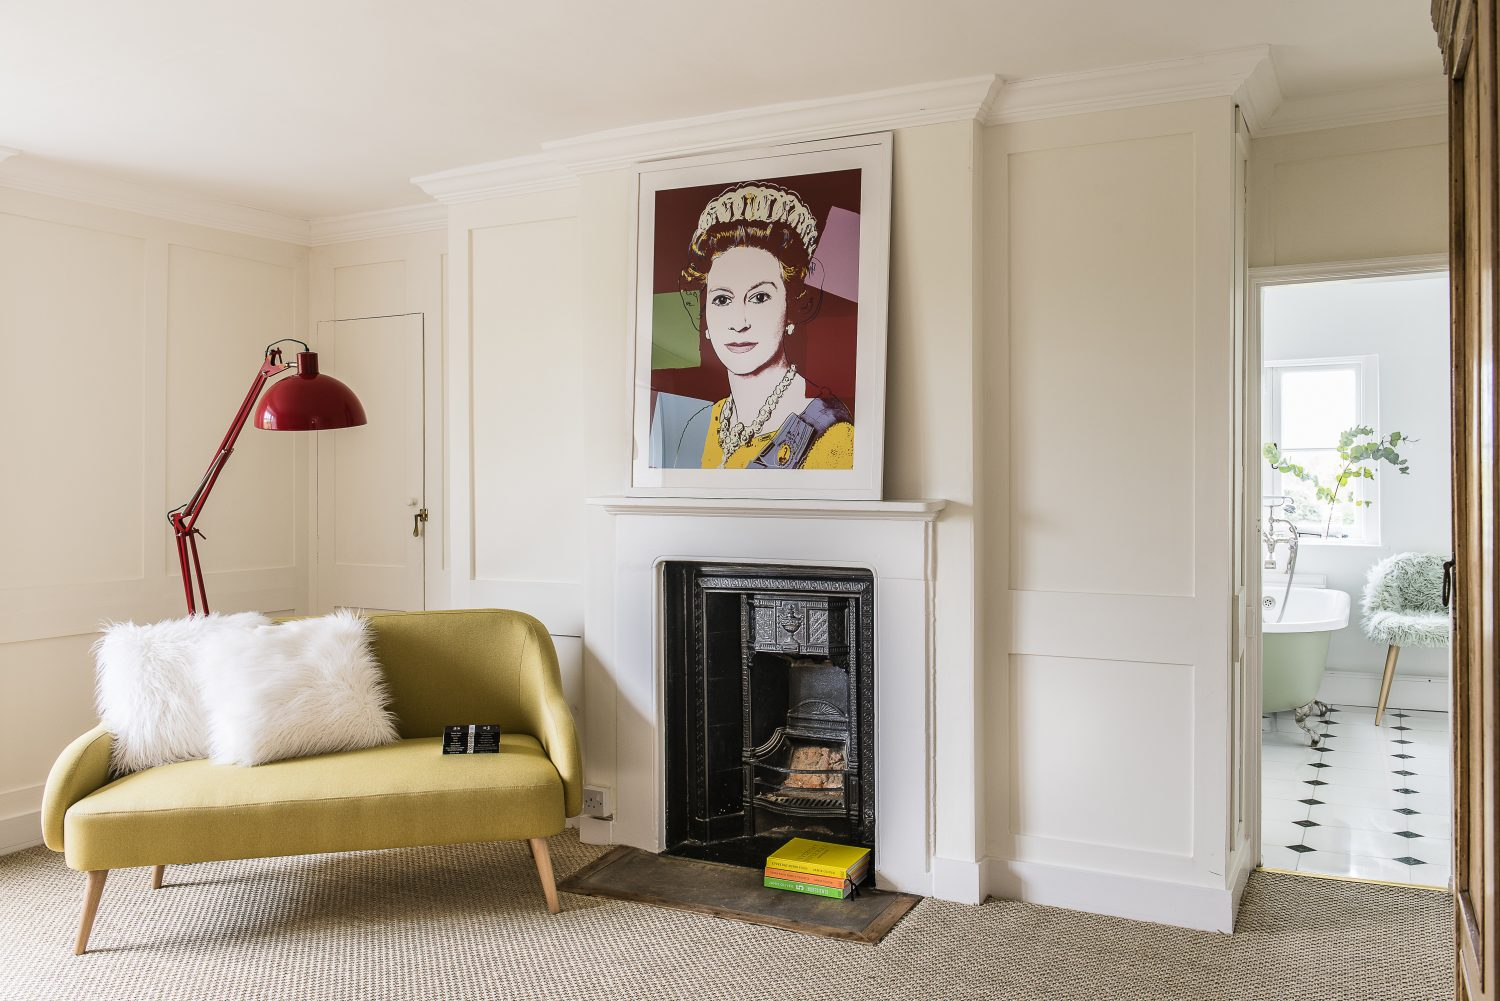 The top floor's main bedroom is fun and colourful with a portrait of the Queen, a yellow sofa and huge red Anglepoise lamp